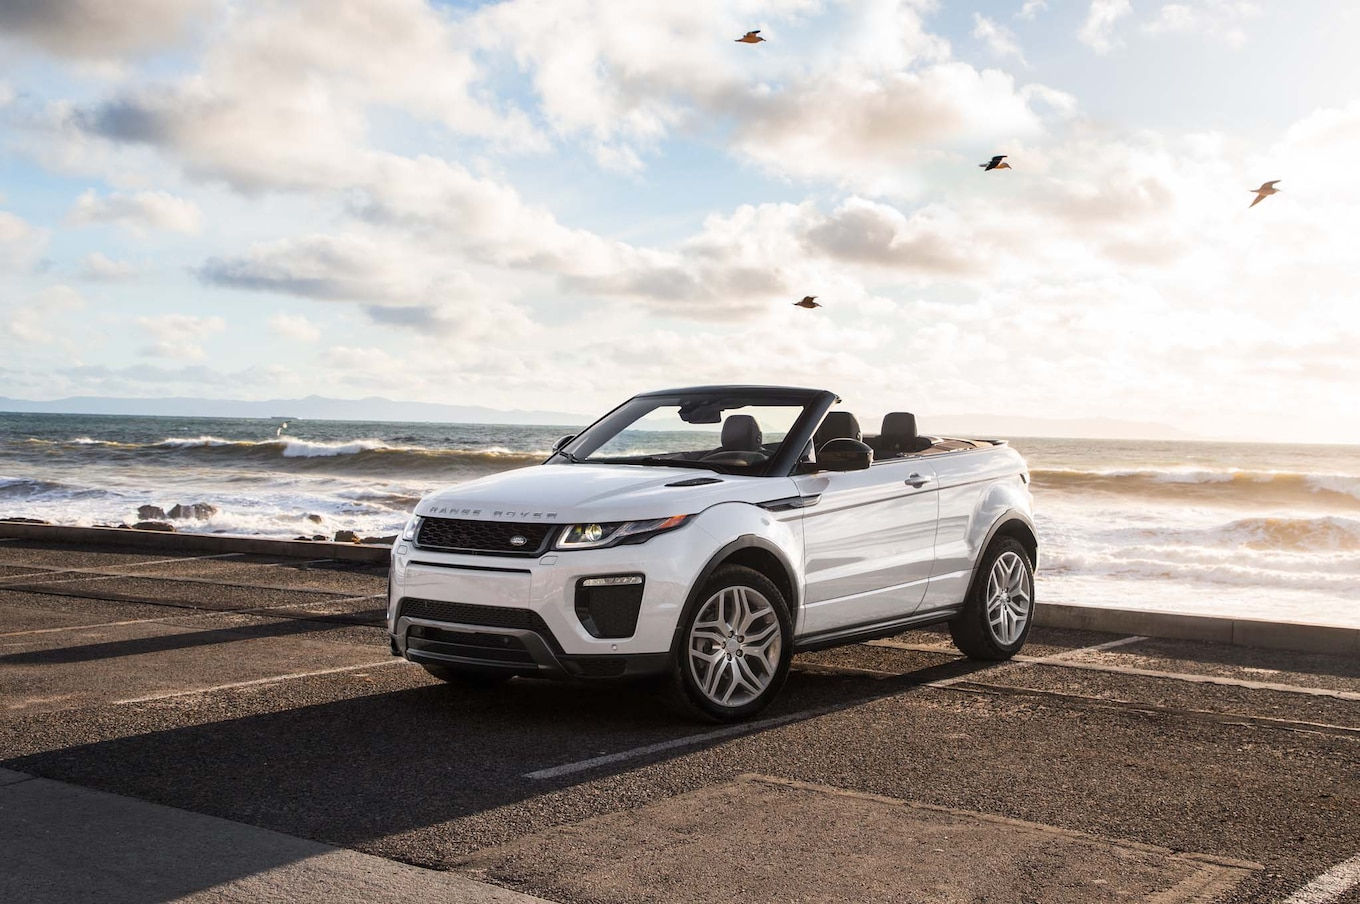 2017 Range Rover Evoque Convertible First Test It s Cool But